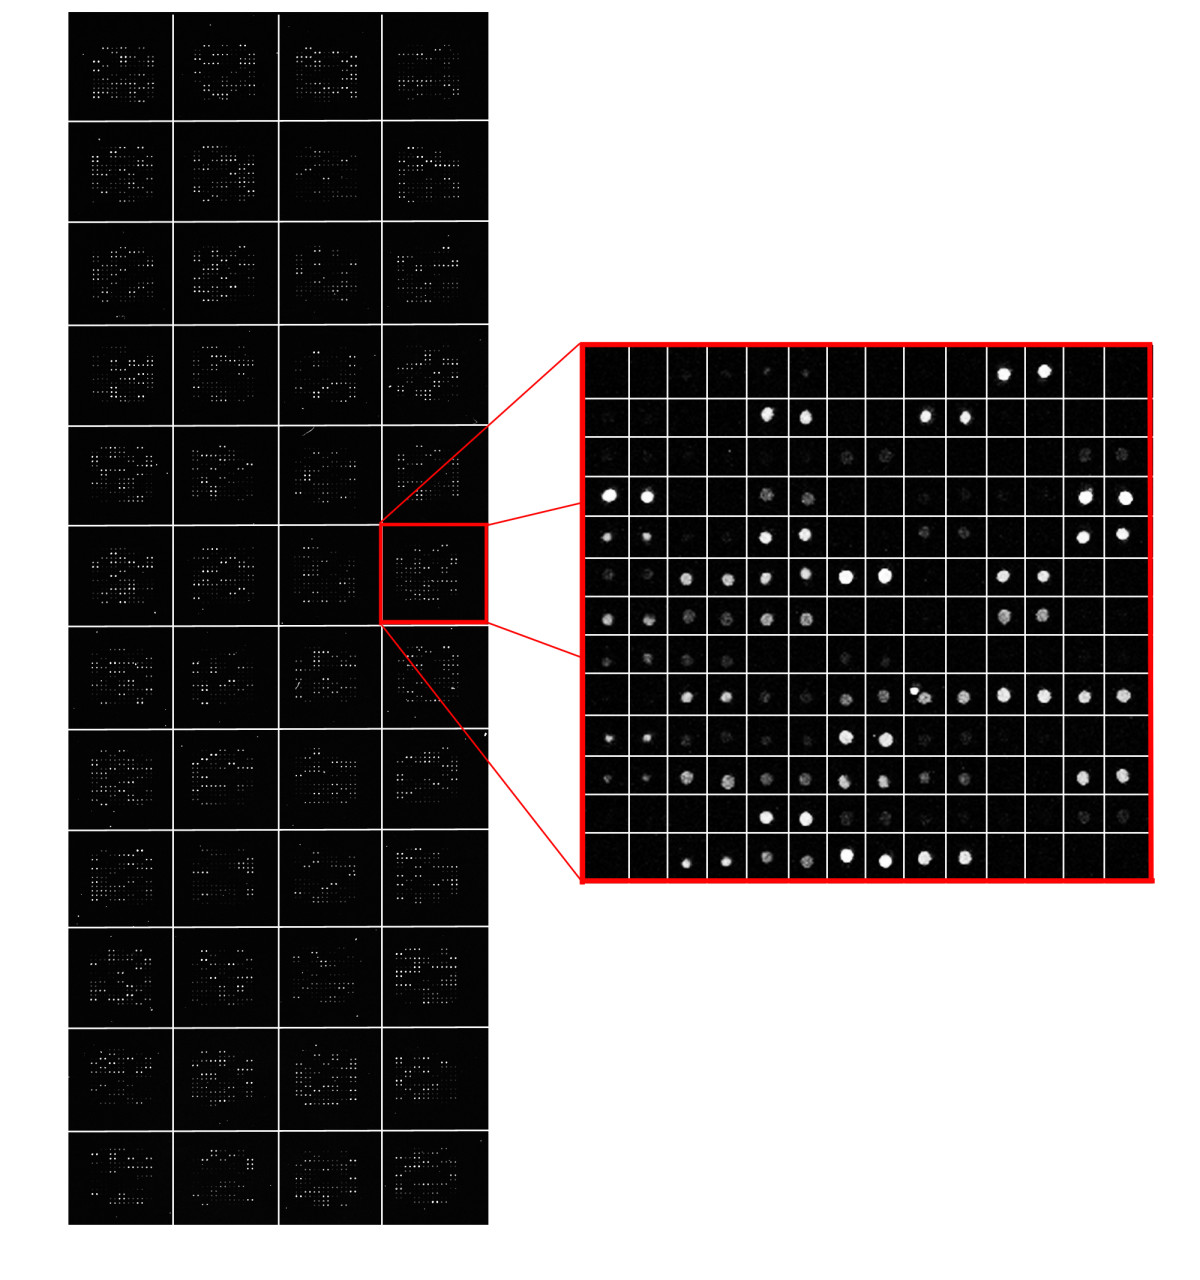 https://static-content.springer.com/image/art%3A10.1186%2F1471-2105-12-113/MediaObjects/12859_2010_Article_4507_Fig2_HTML.jpg